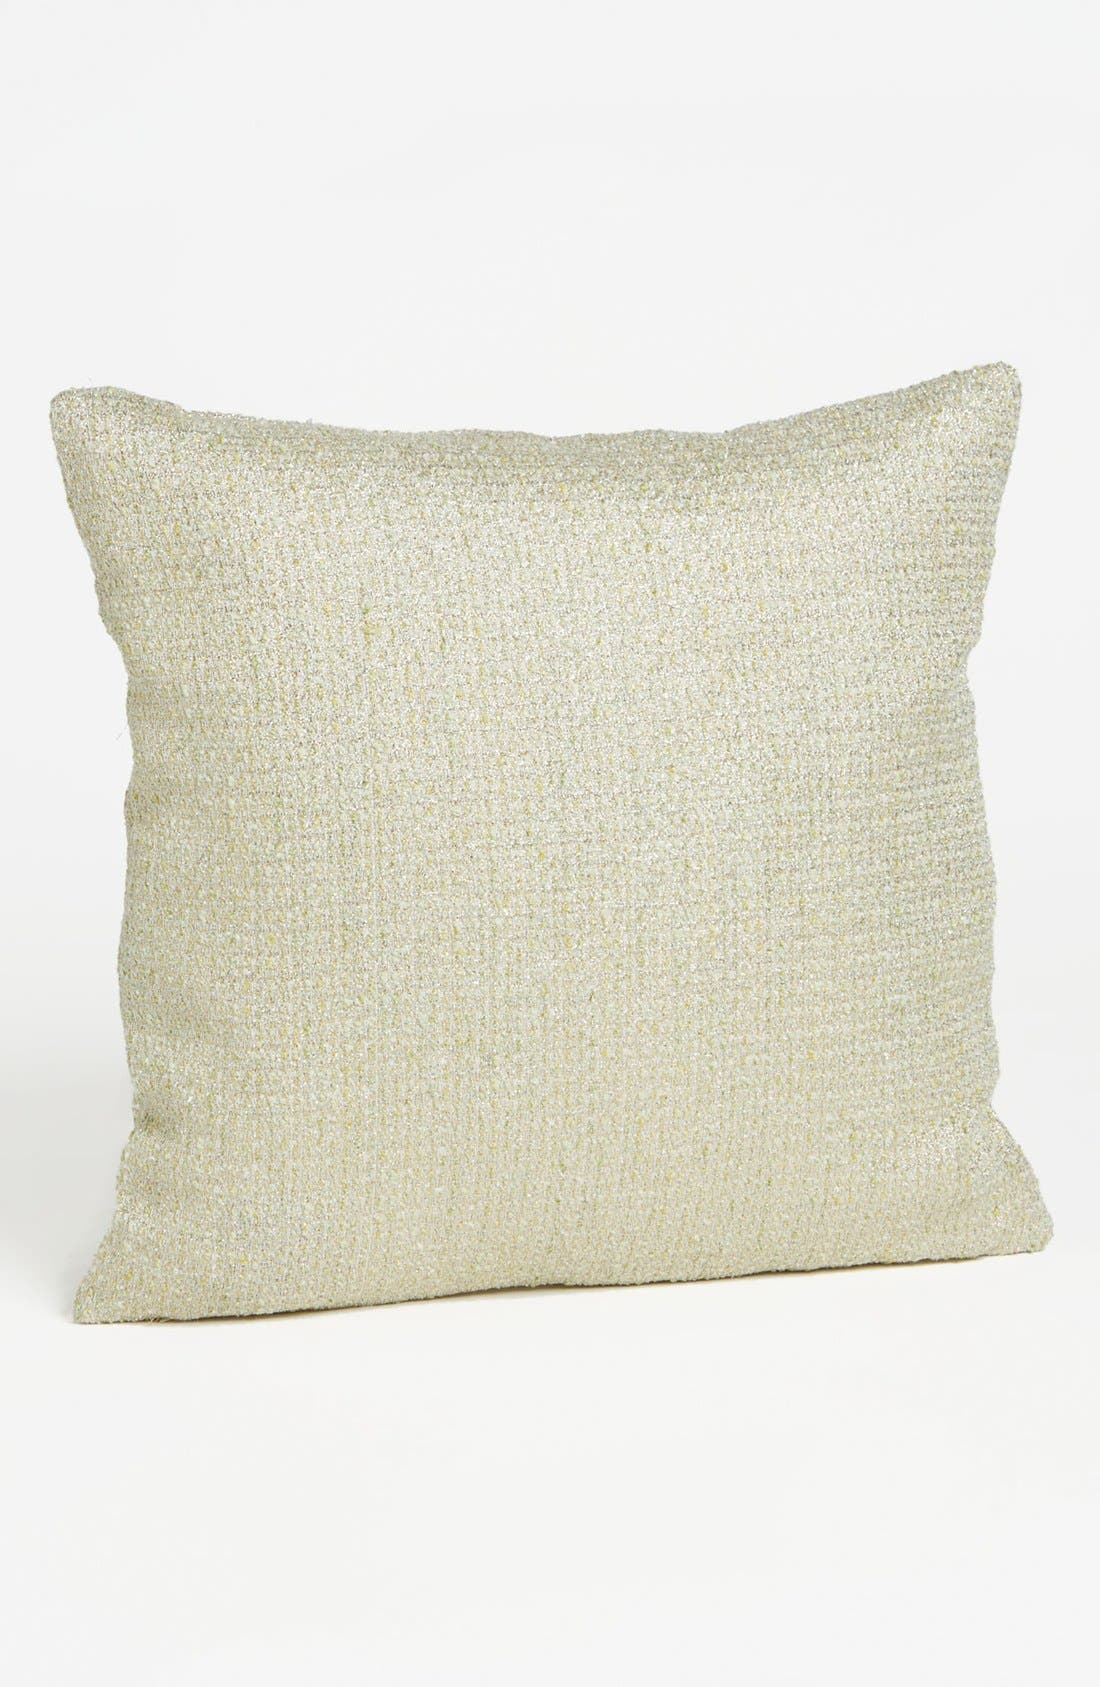 Alternate Image 1 Selected - Vince Camuto 'Bal Harbour' Metallic Pillow